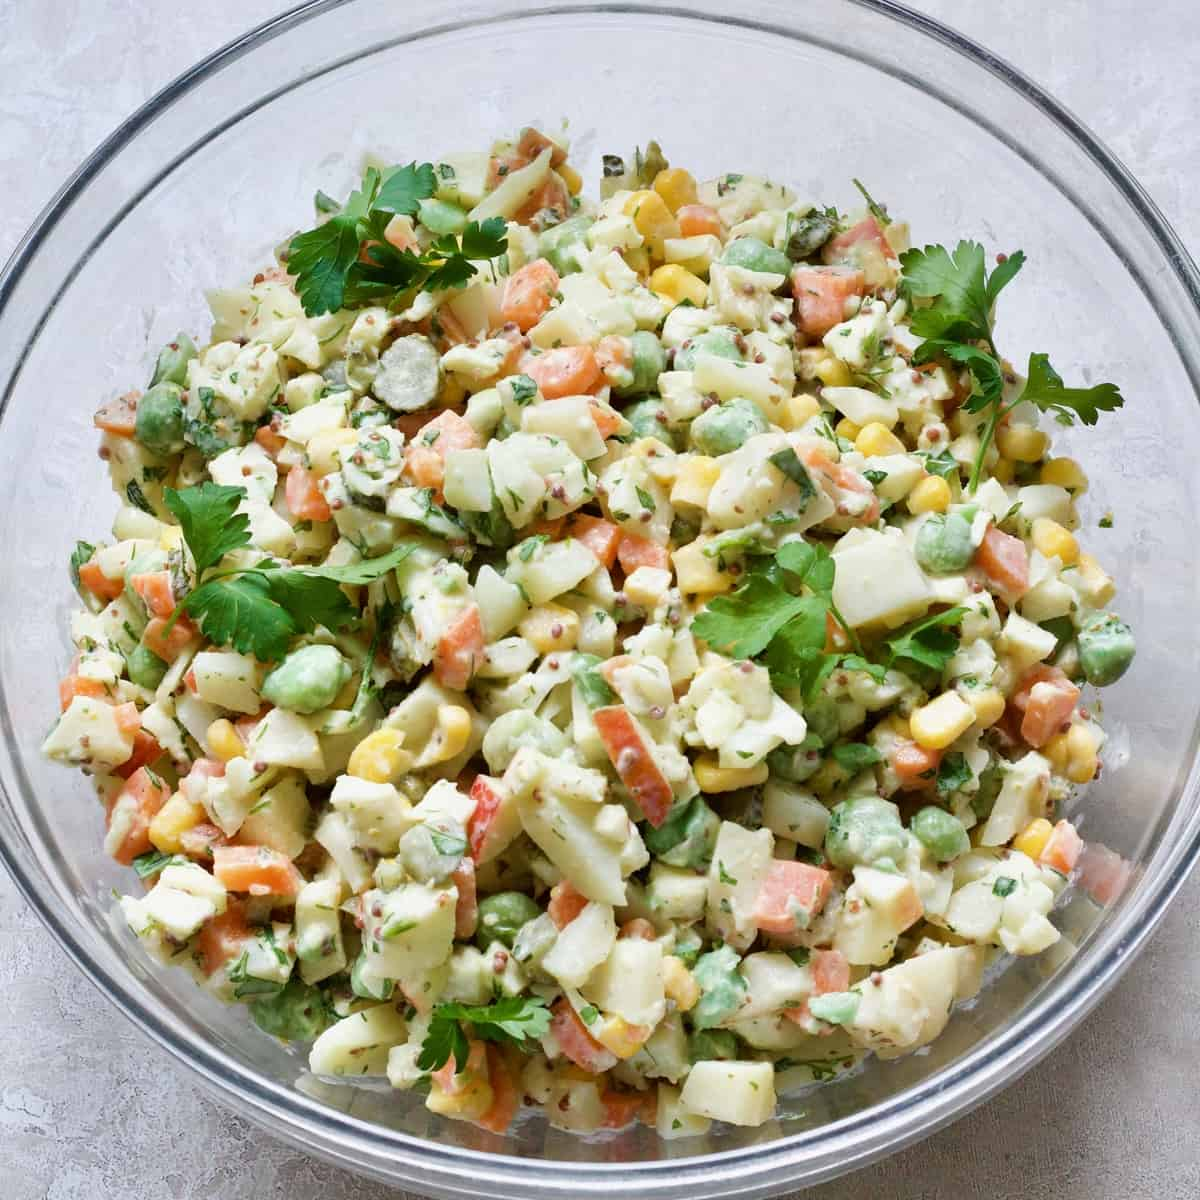 Russian Salad in a bowl ready to serve.